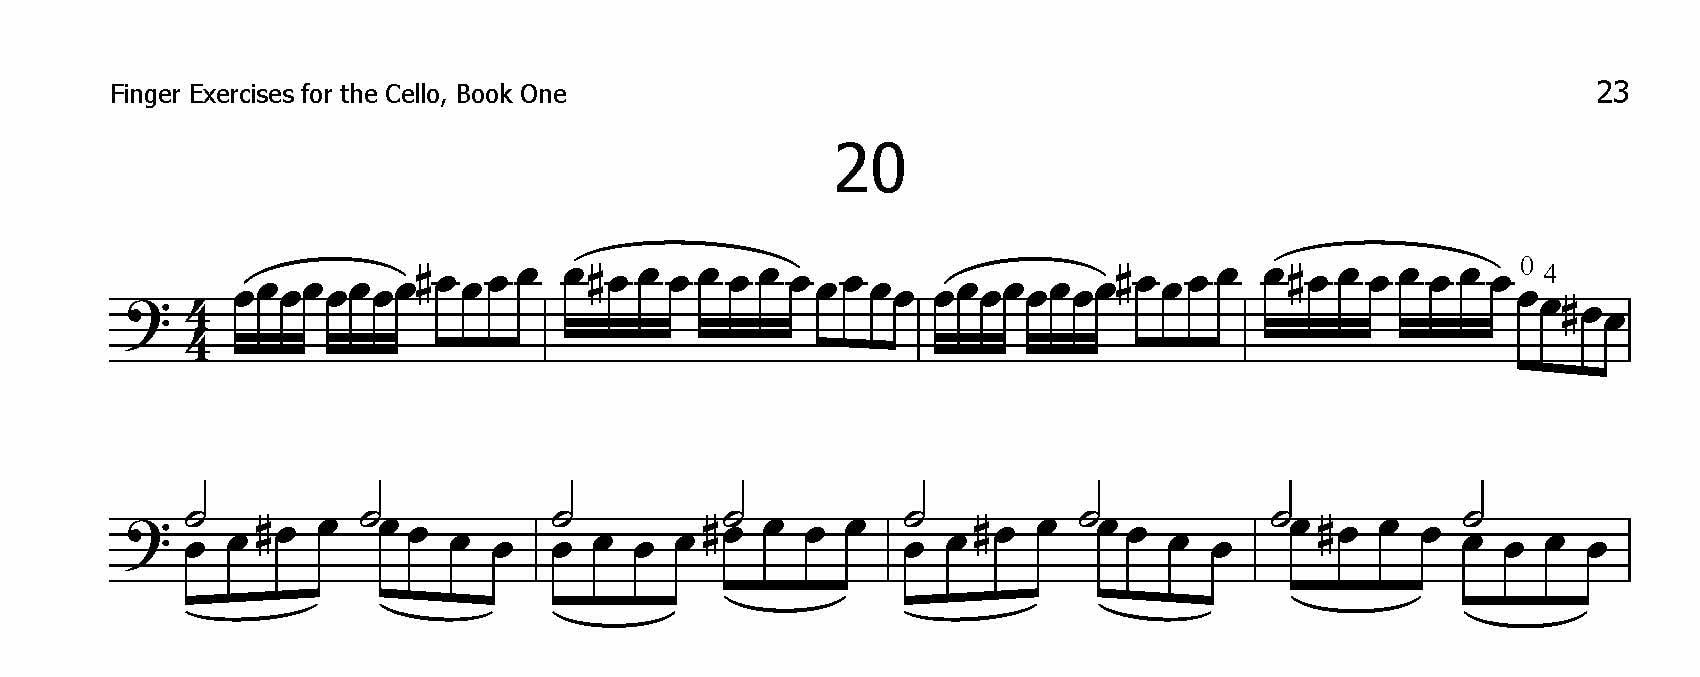 Finger Exercises for the Cello, Book One Page 20 Excerpt